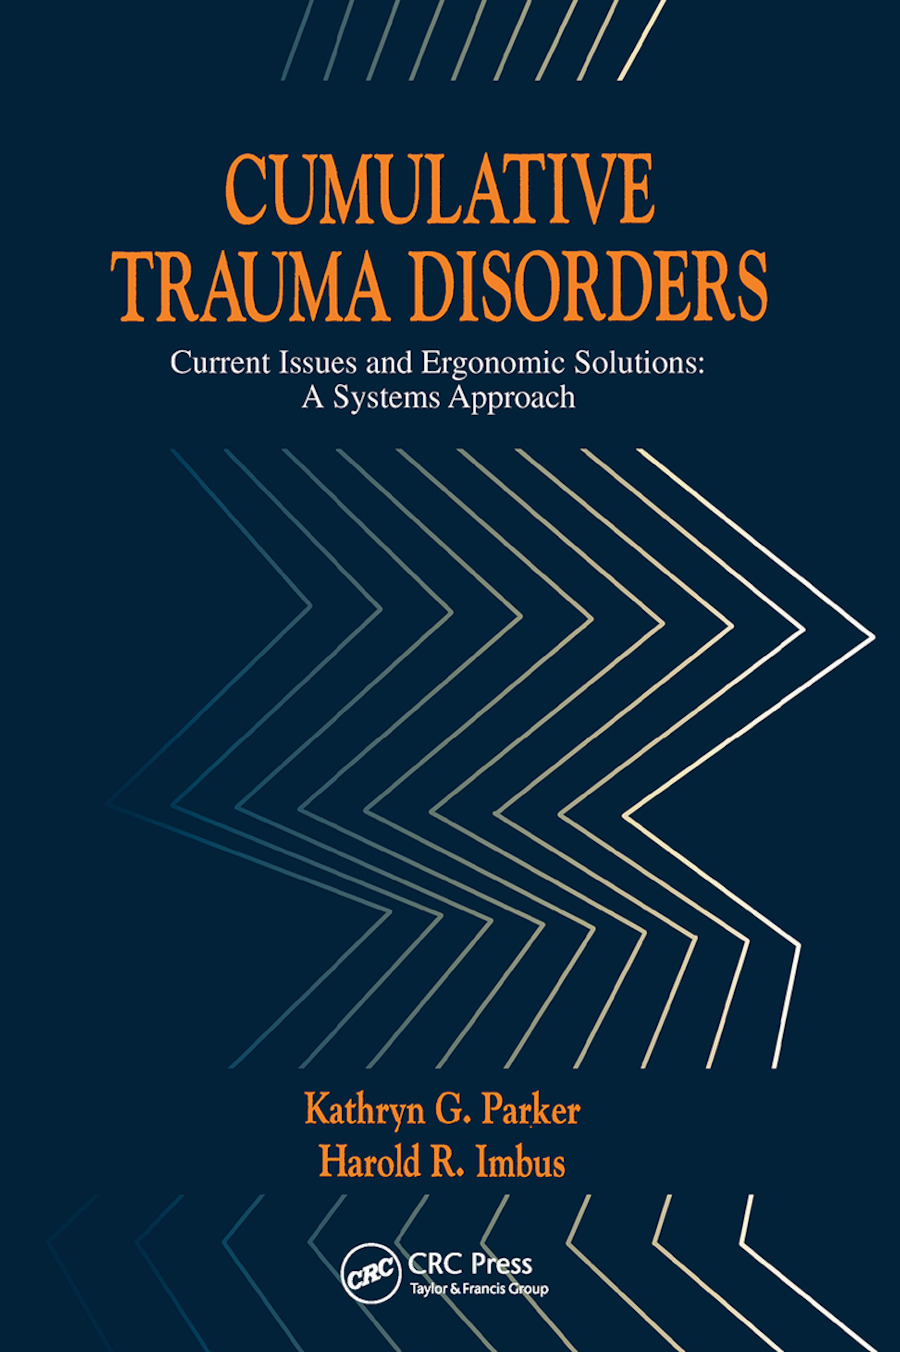 Cumulative Trauma Disorders: Current Issues and Ergonomic Solutions book cover